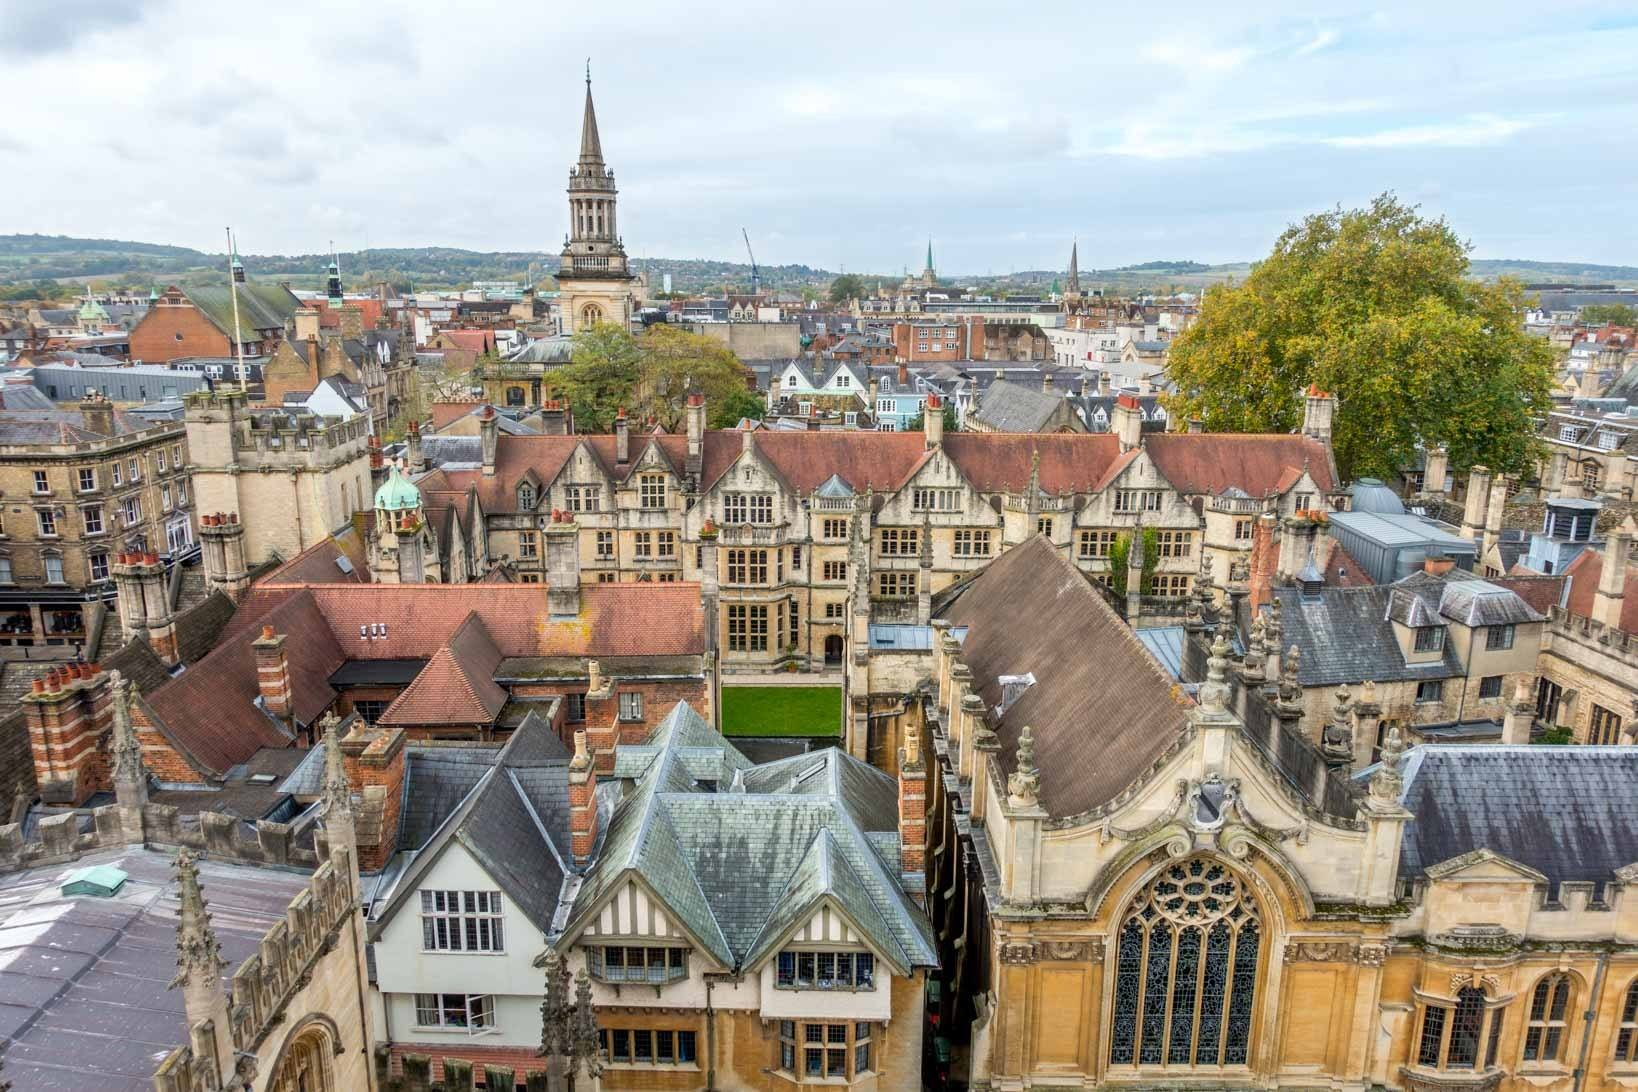 Seeing the city rooftops is one of the fun things to do in Oxford England.